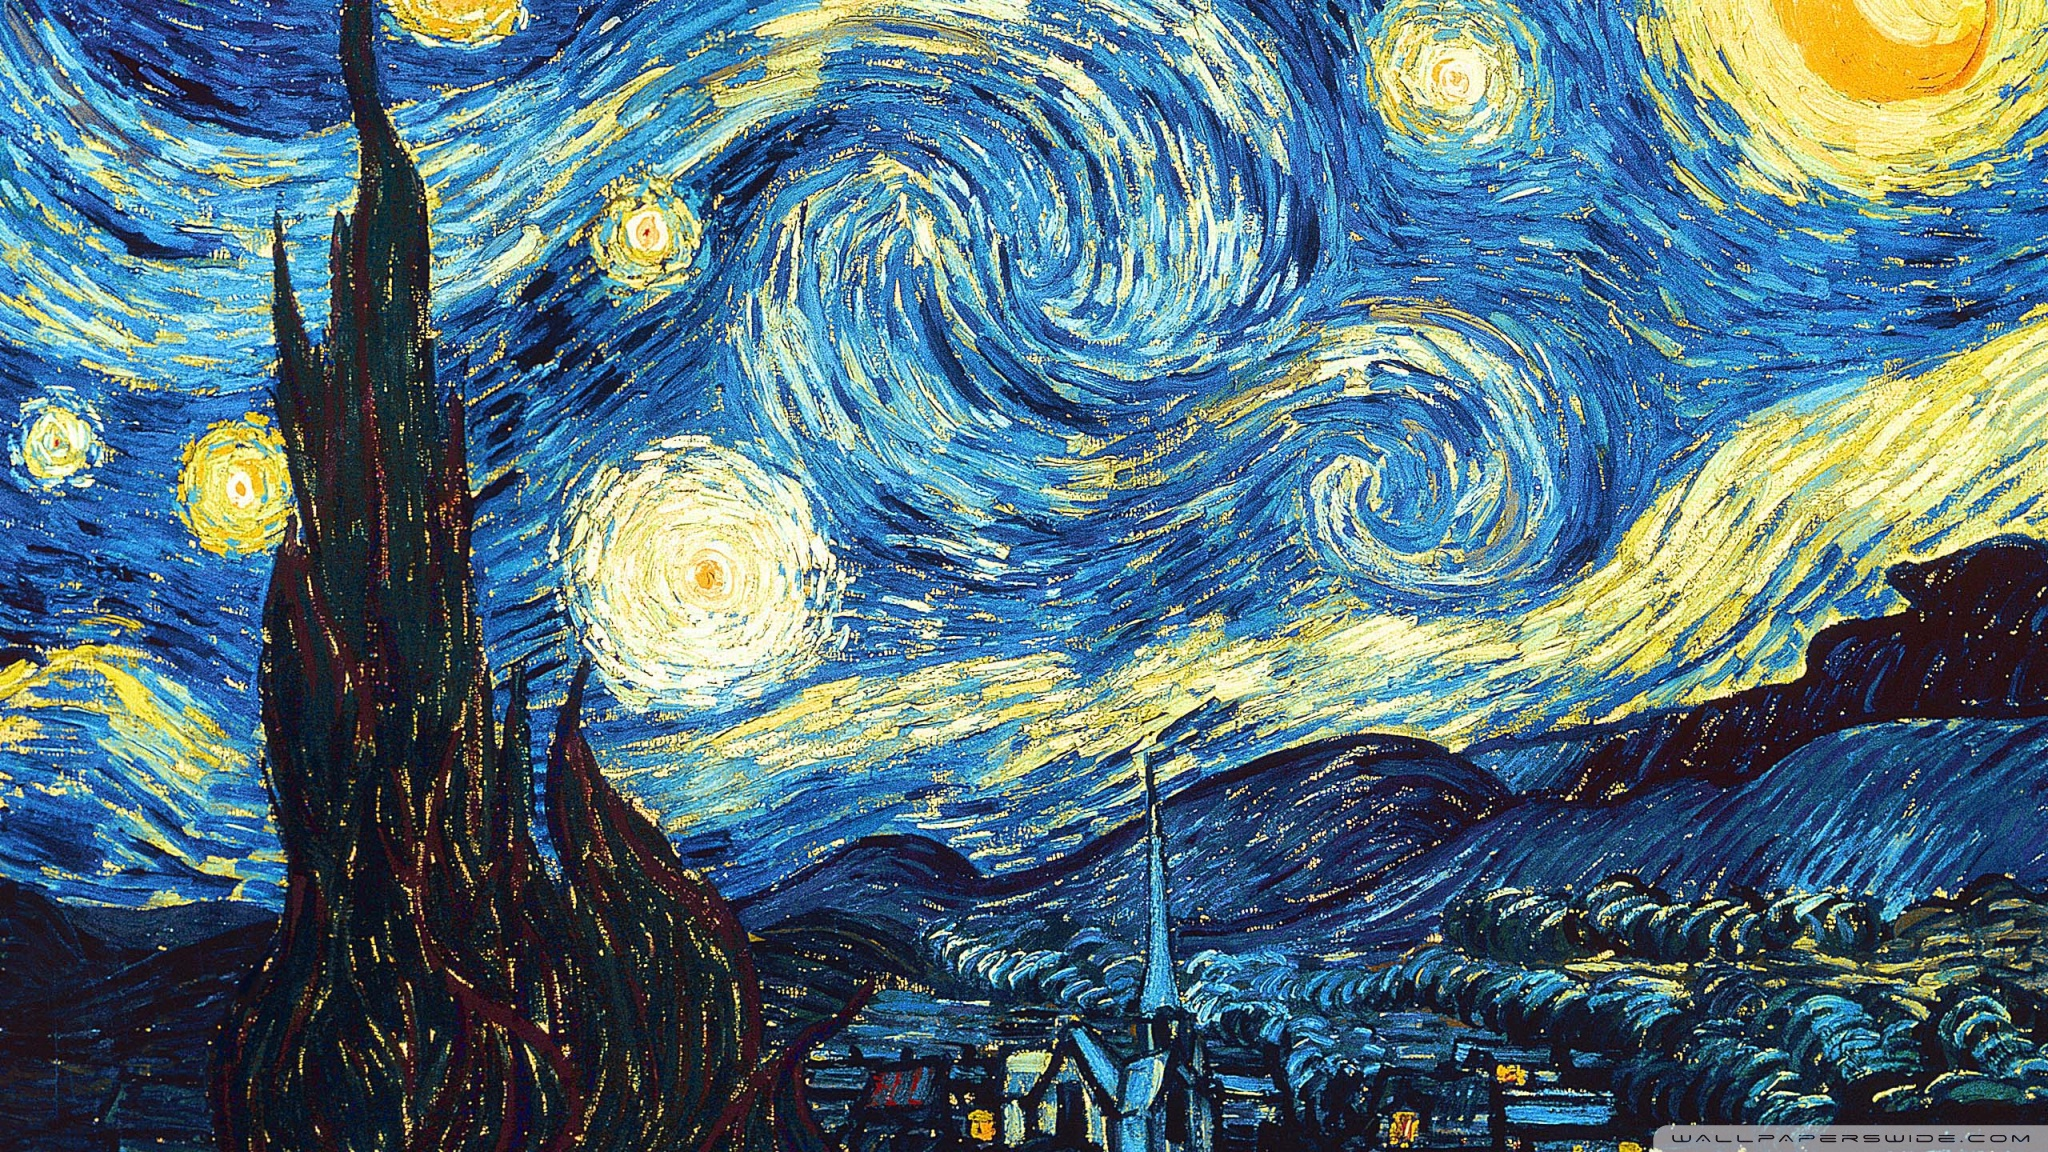 Van Gogh Starry Night Desktop Wallpaper